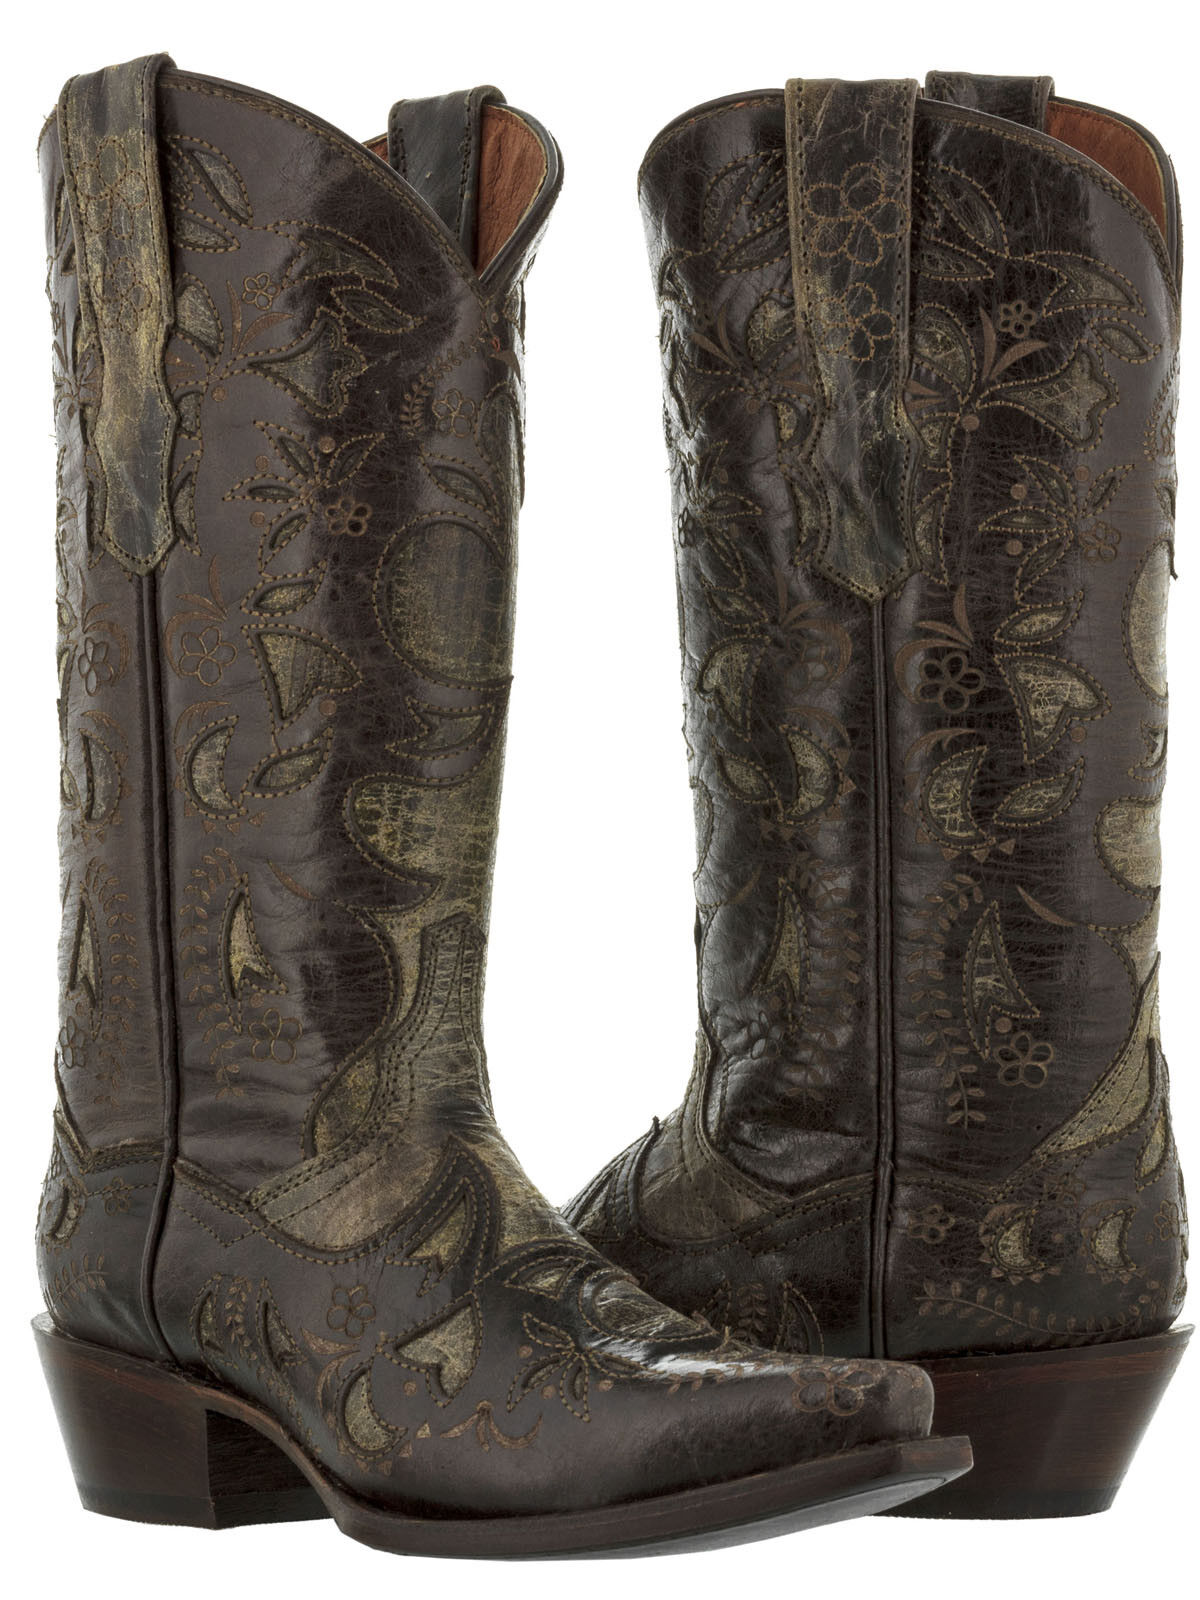 Womens Brown Half Overlay Distressed Real Leather Leather Leather Western Cowgirl Boots Snip Toe ee7c5b